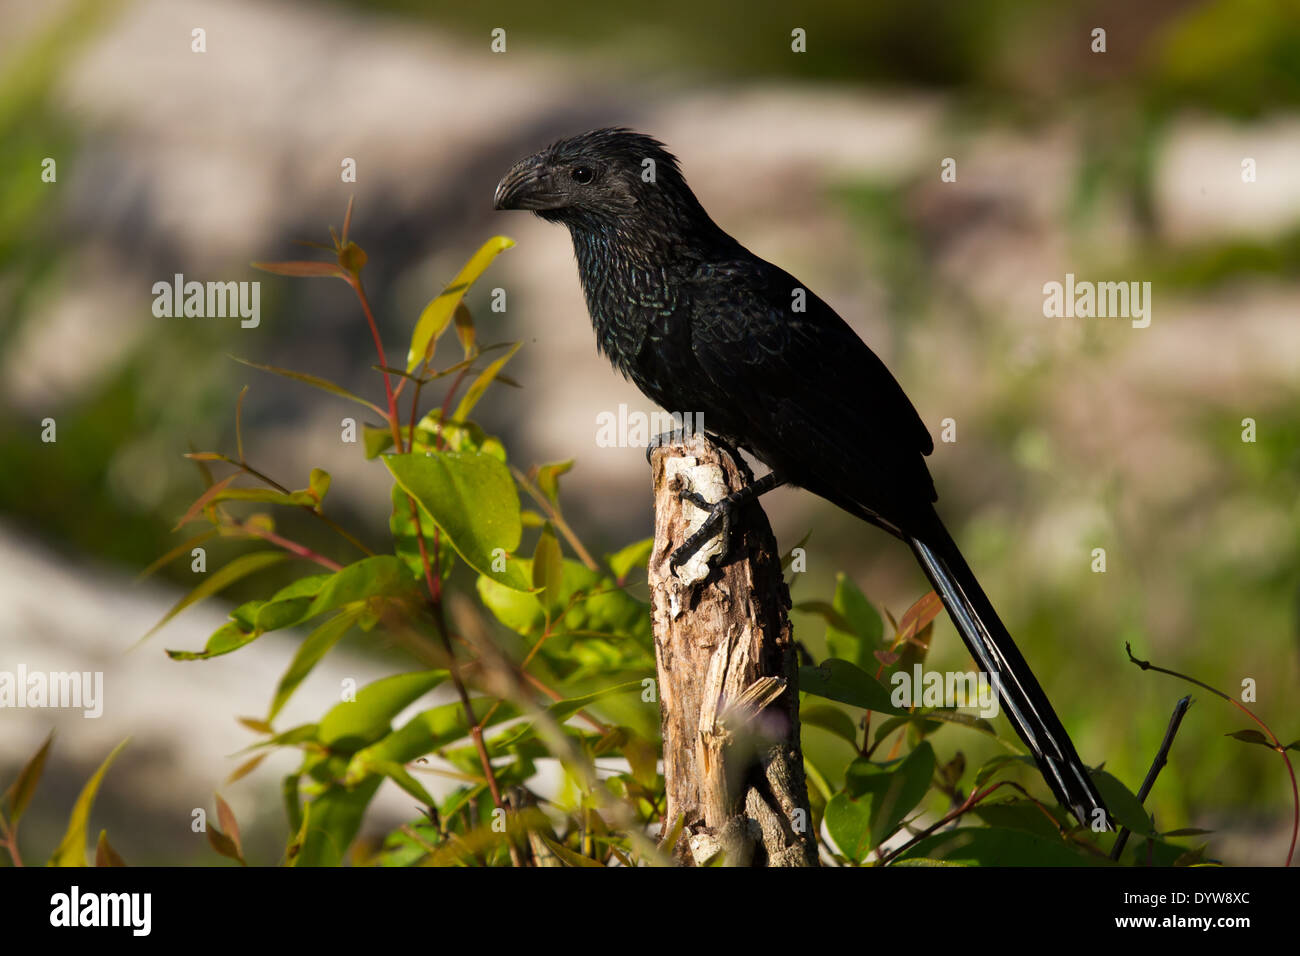 Groove-billed Ani (Crotophaga sulcirostris) - Stock Image